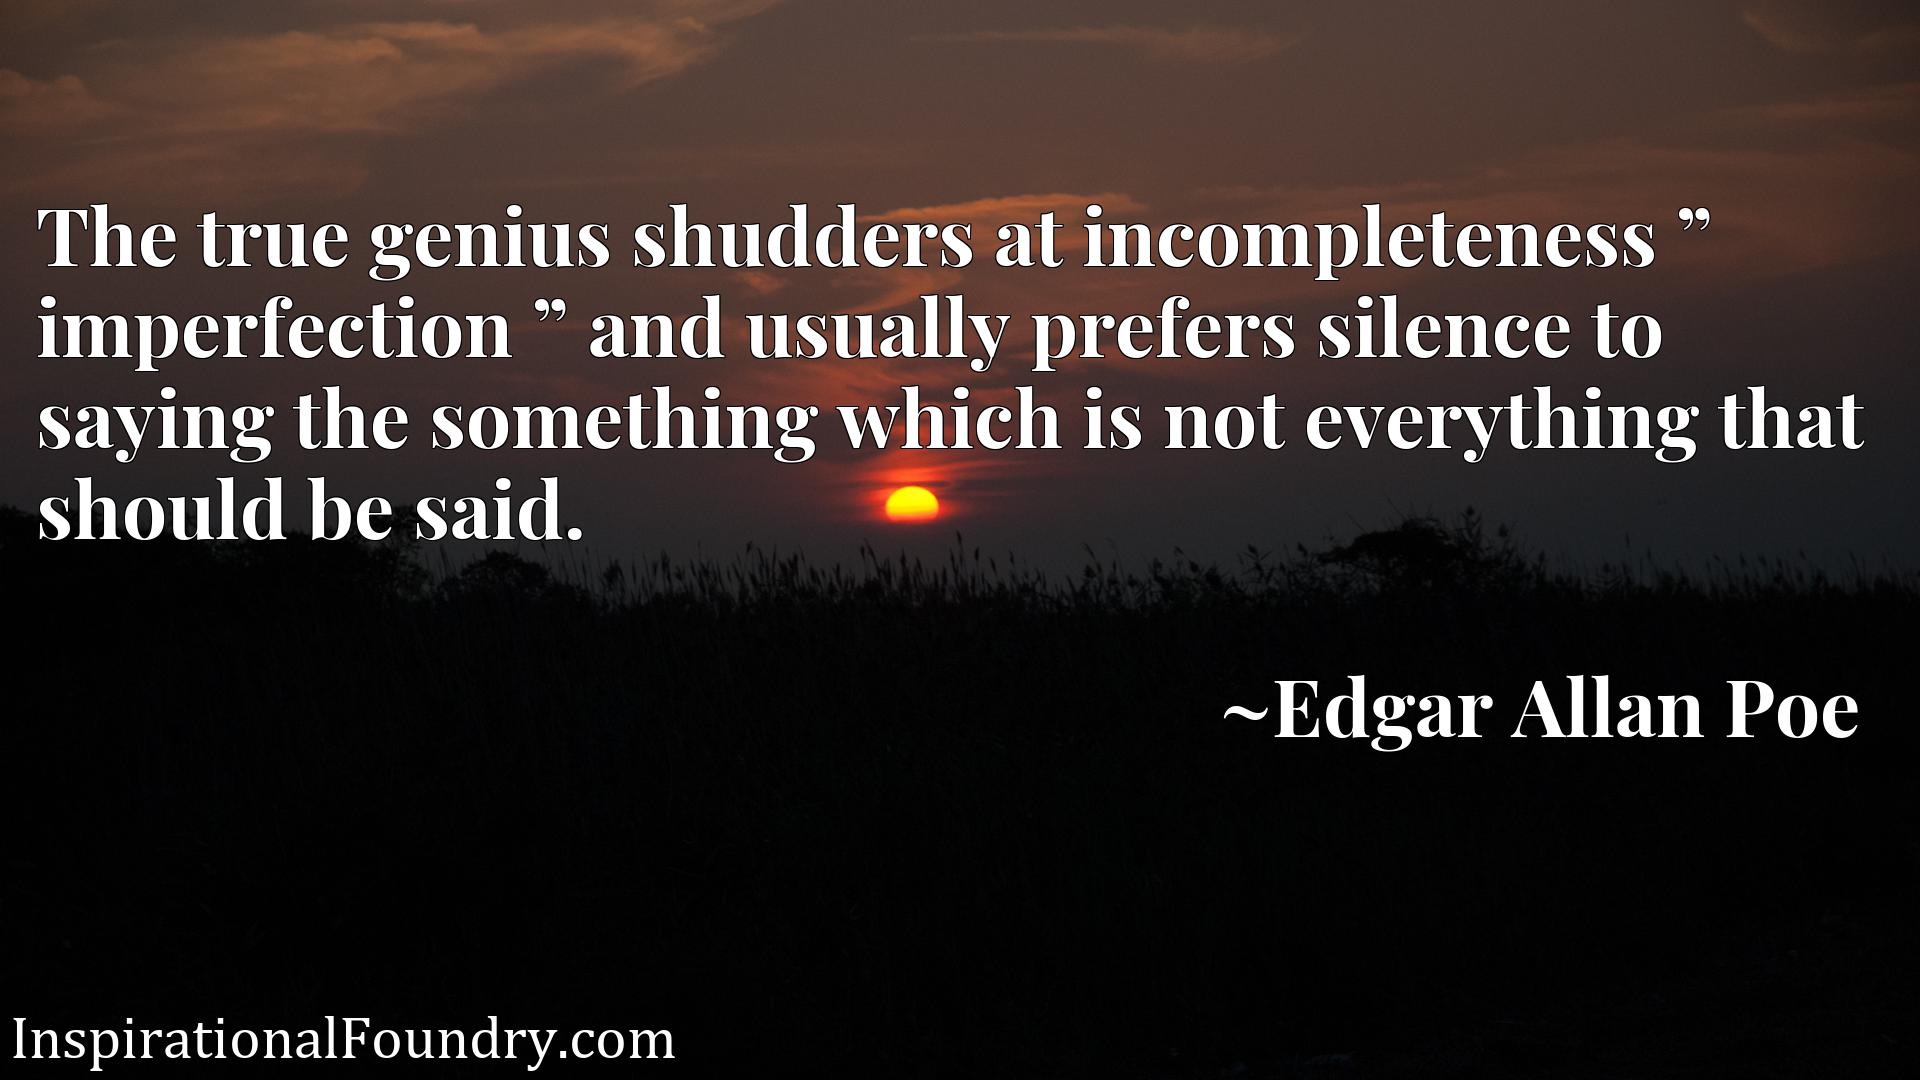 "The true genius shudders at incompleteness "" imperfection "" and usually prefers silence to saying the something which is not everything that should be said."